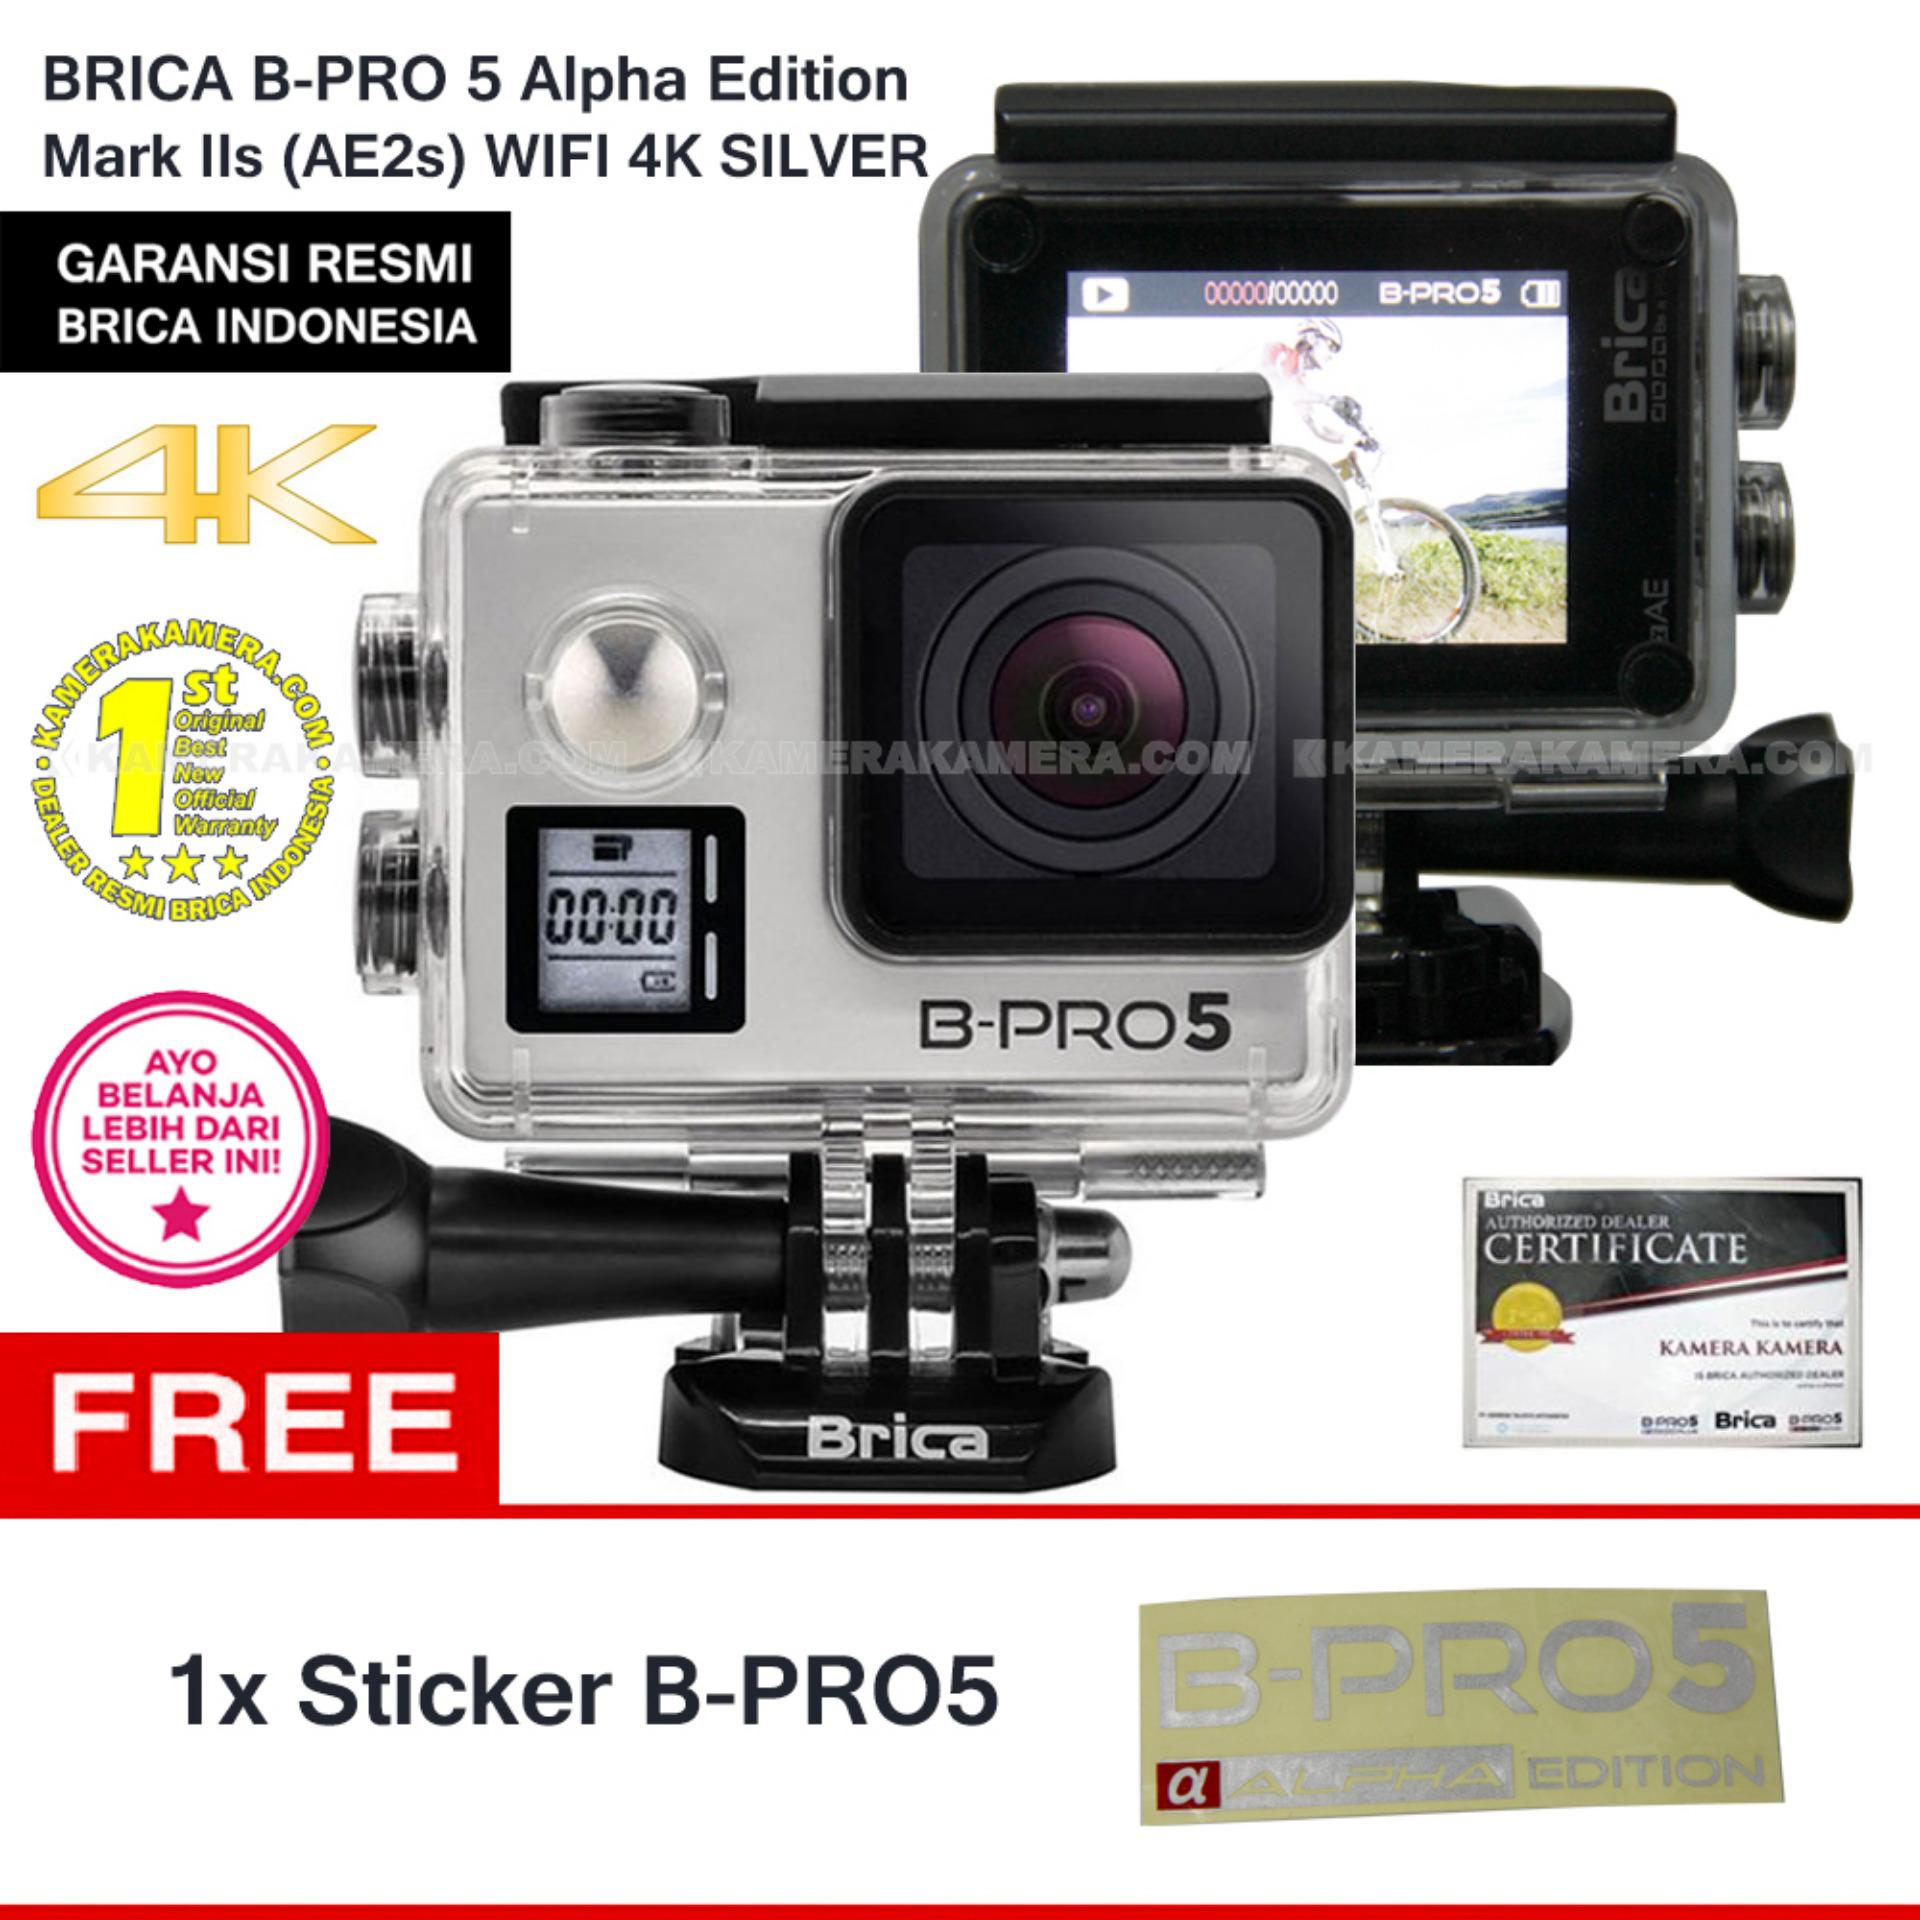 Tips Beli Brica B Pro5 Alpha Edition 4K Mark Iis Ae2S Silver Free Sticker B Pro5